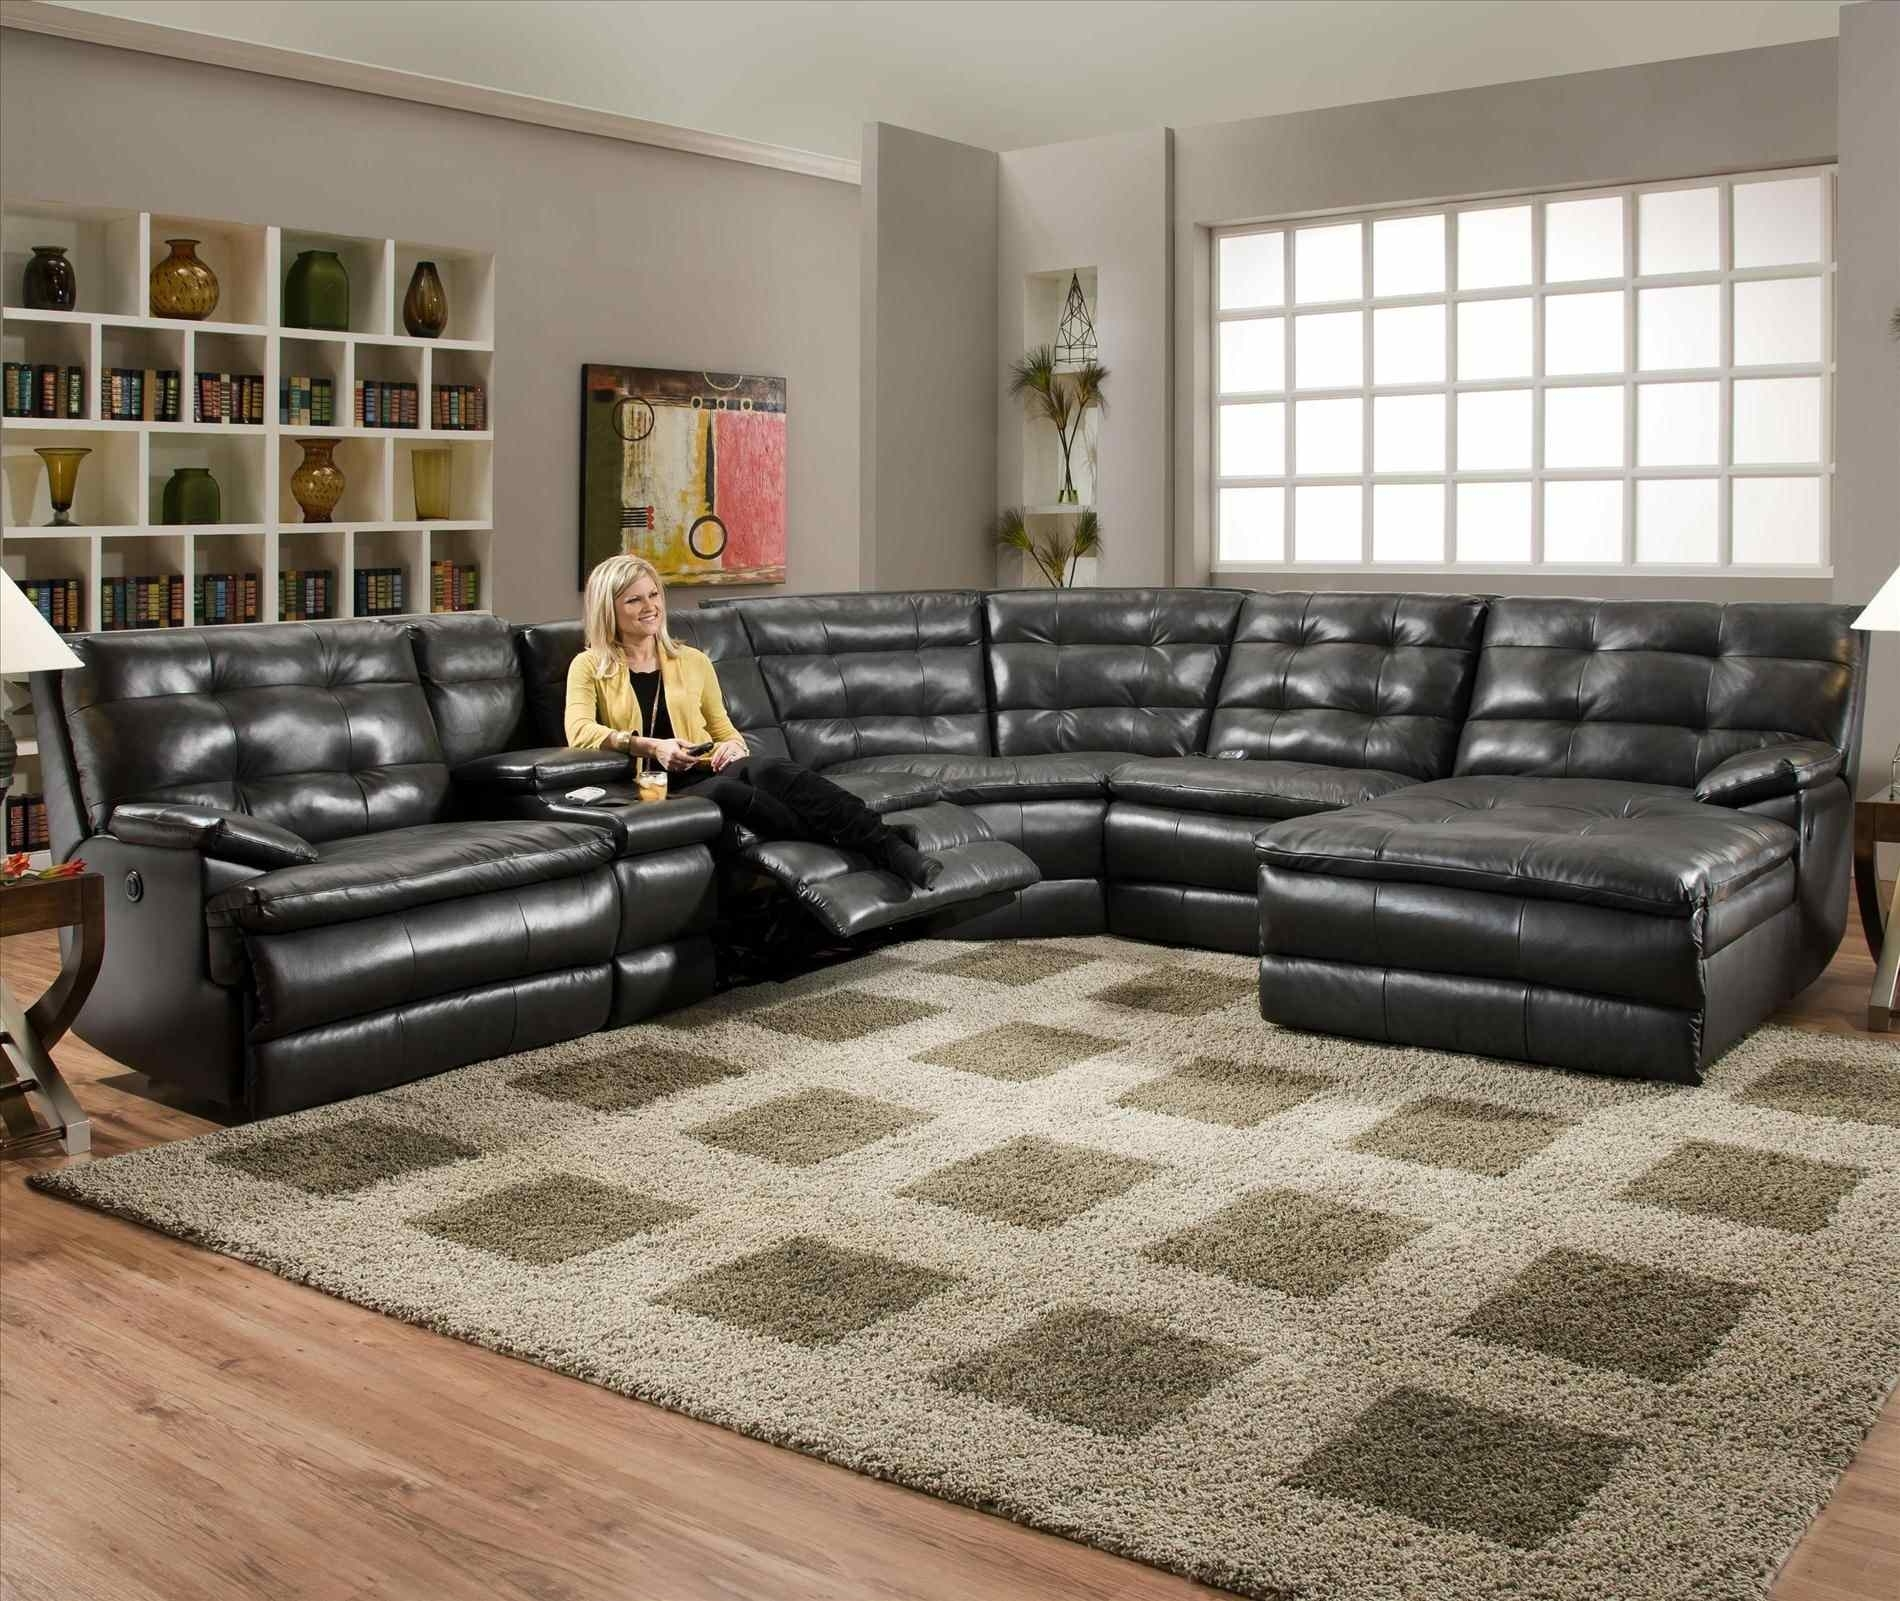 Couch : Furniture Bad Boy Sectional Es Wrap Around Couch Furniture For Sectional Sofas At Bad Boy (Image 6 of 10)